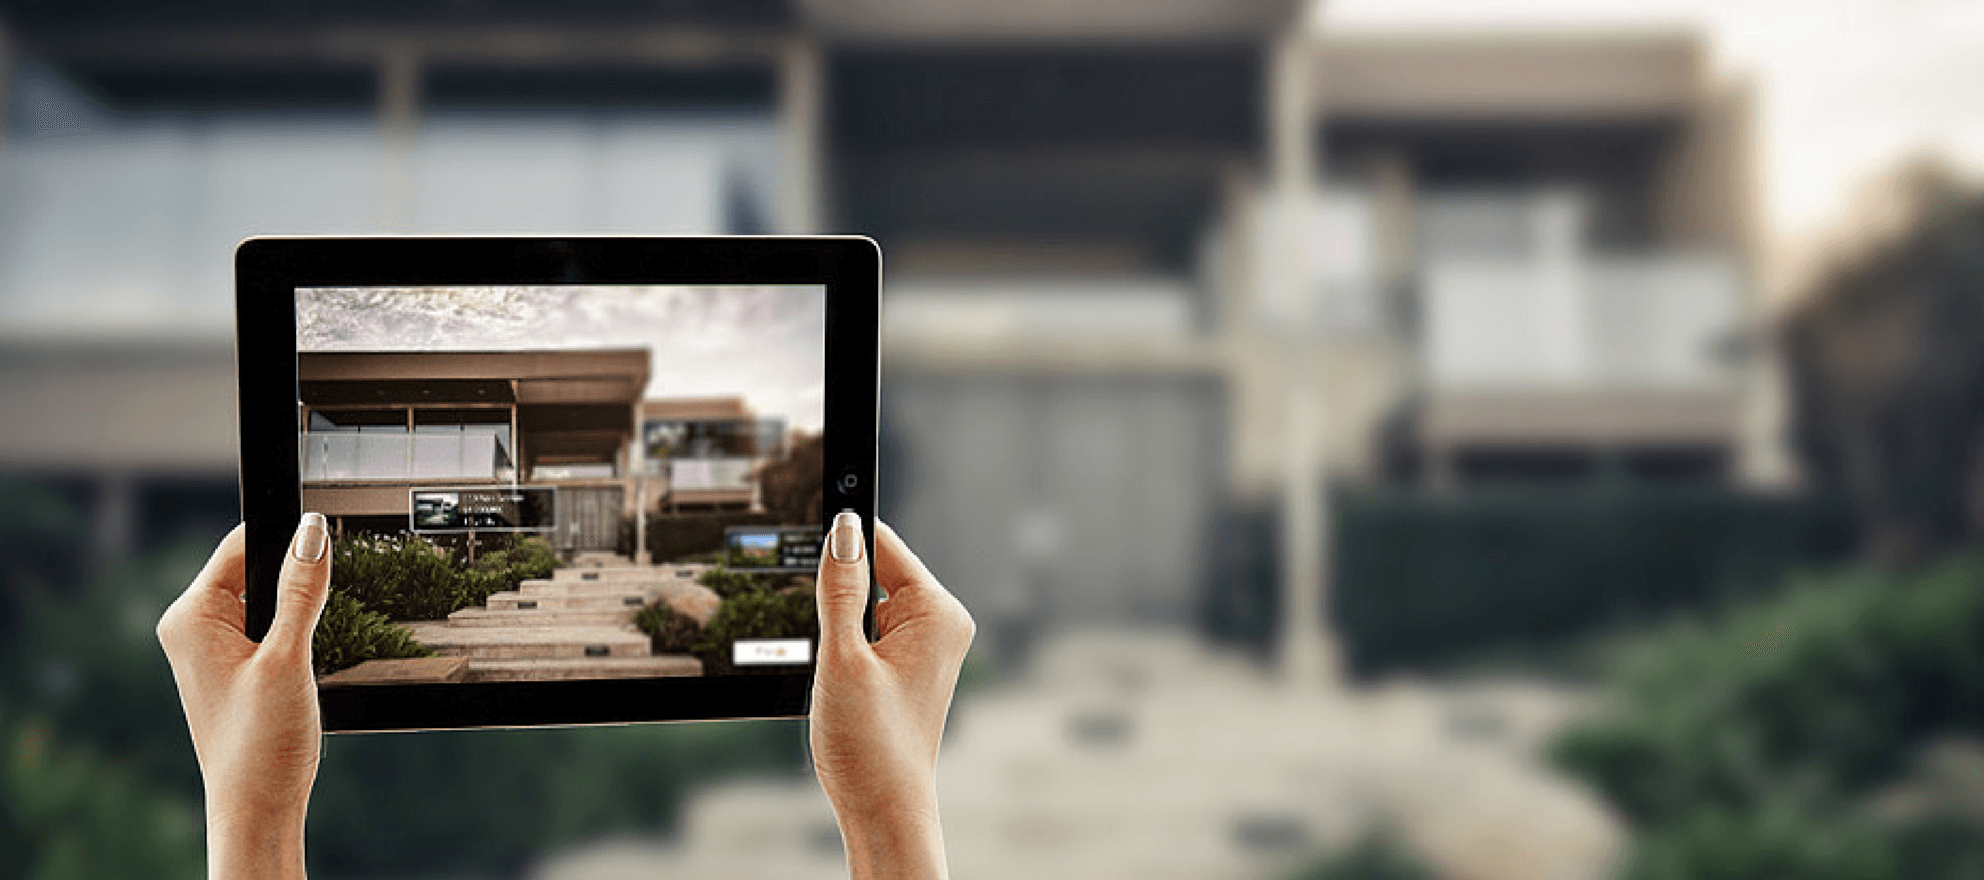 Developer of augmented reality app for listings lands $1.8M